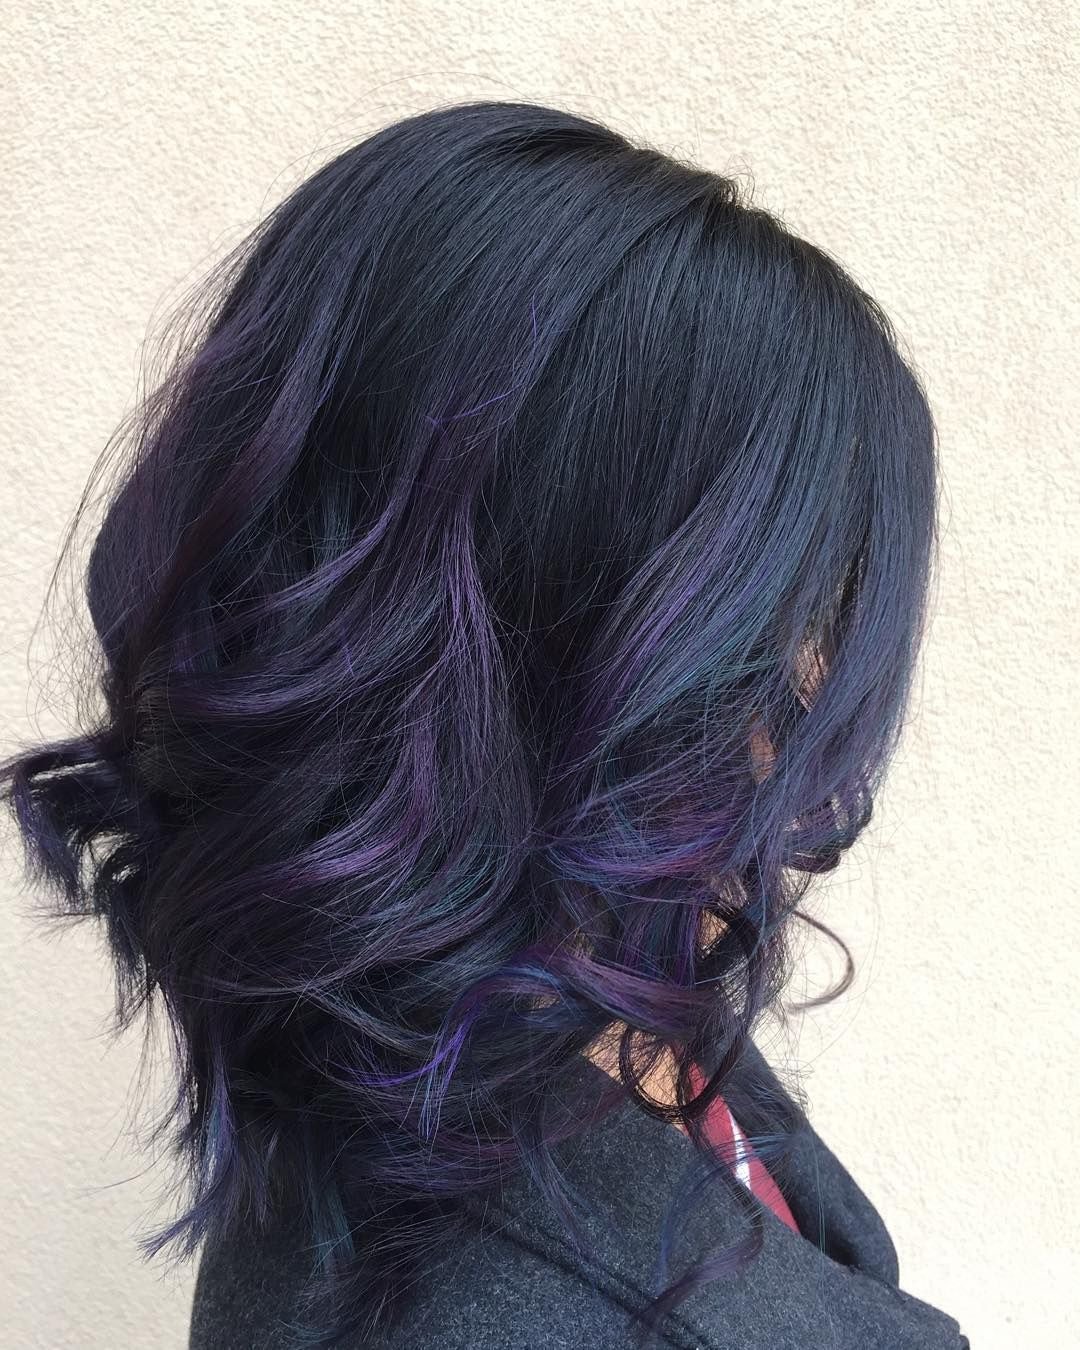 oil slick hair                                                                                                                                                      More